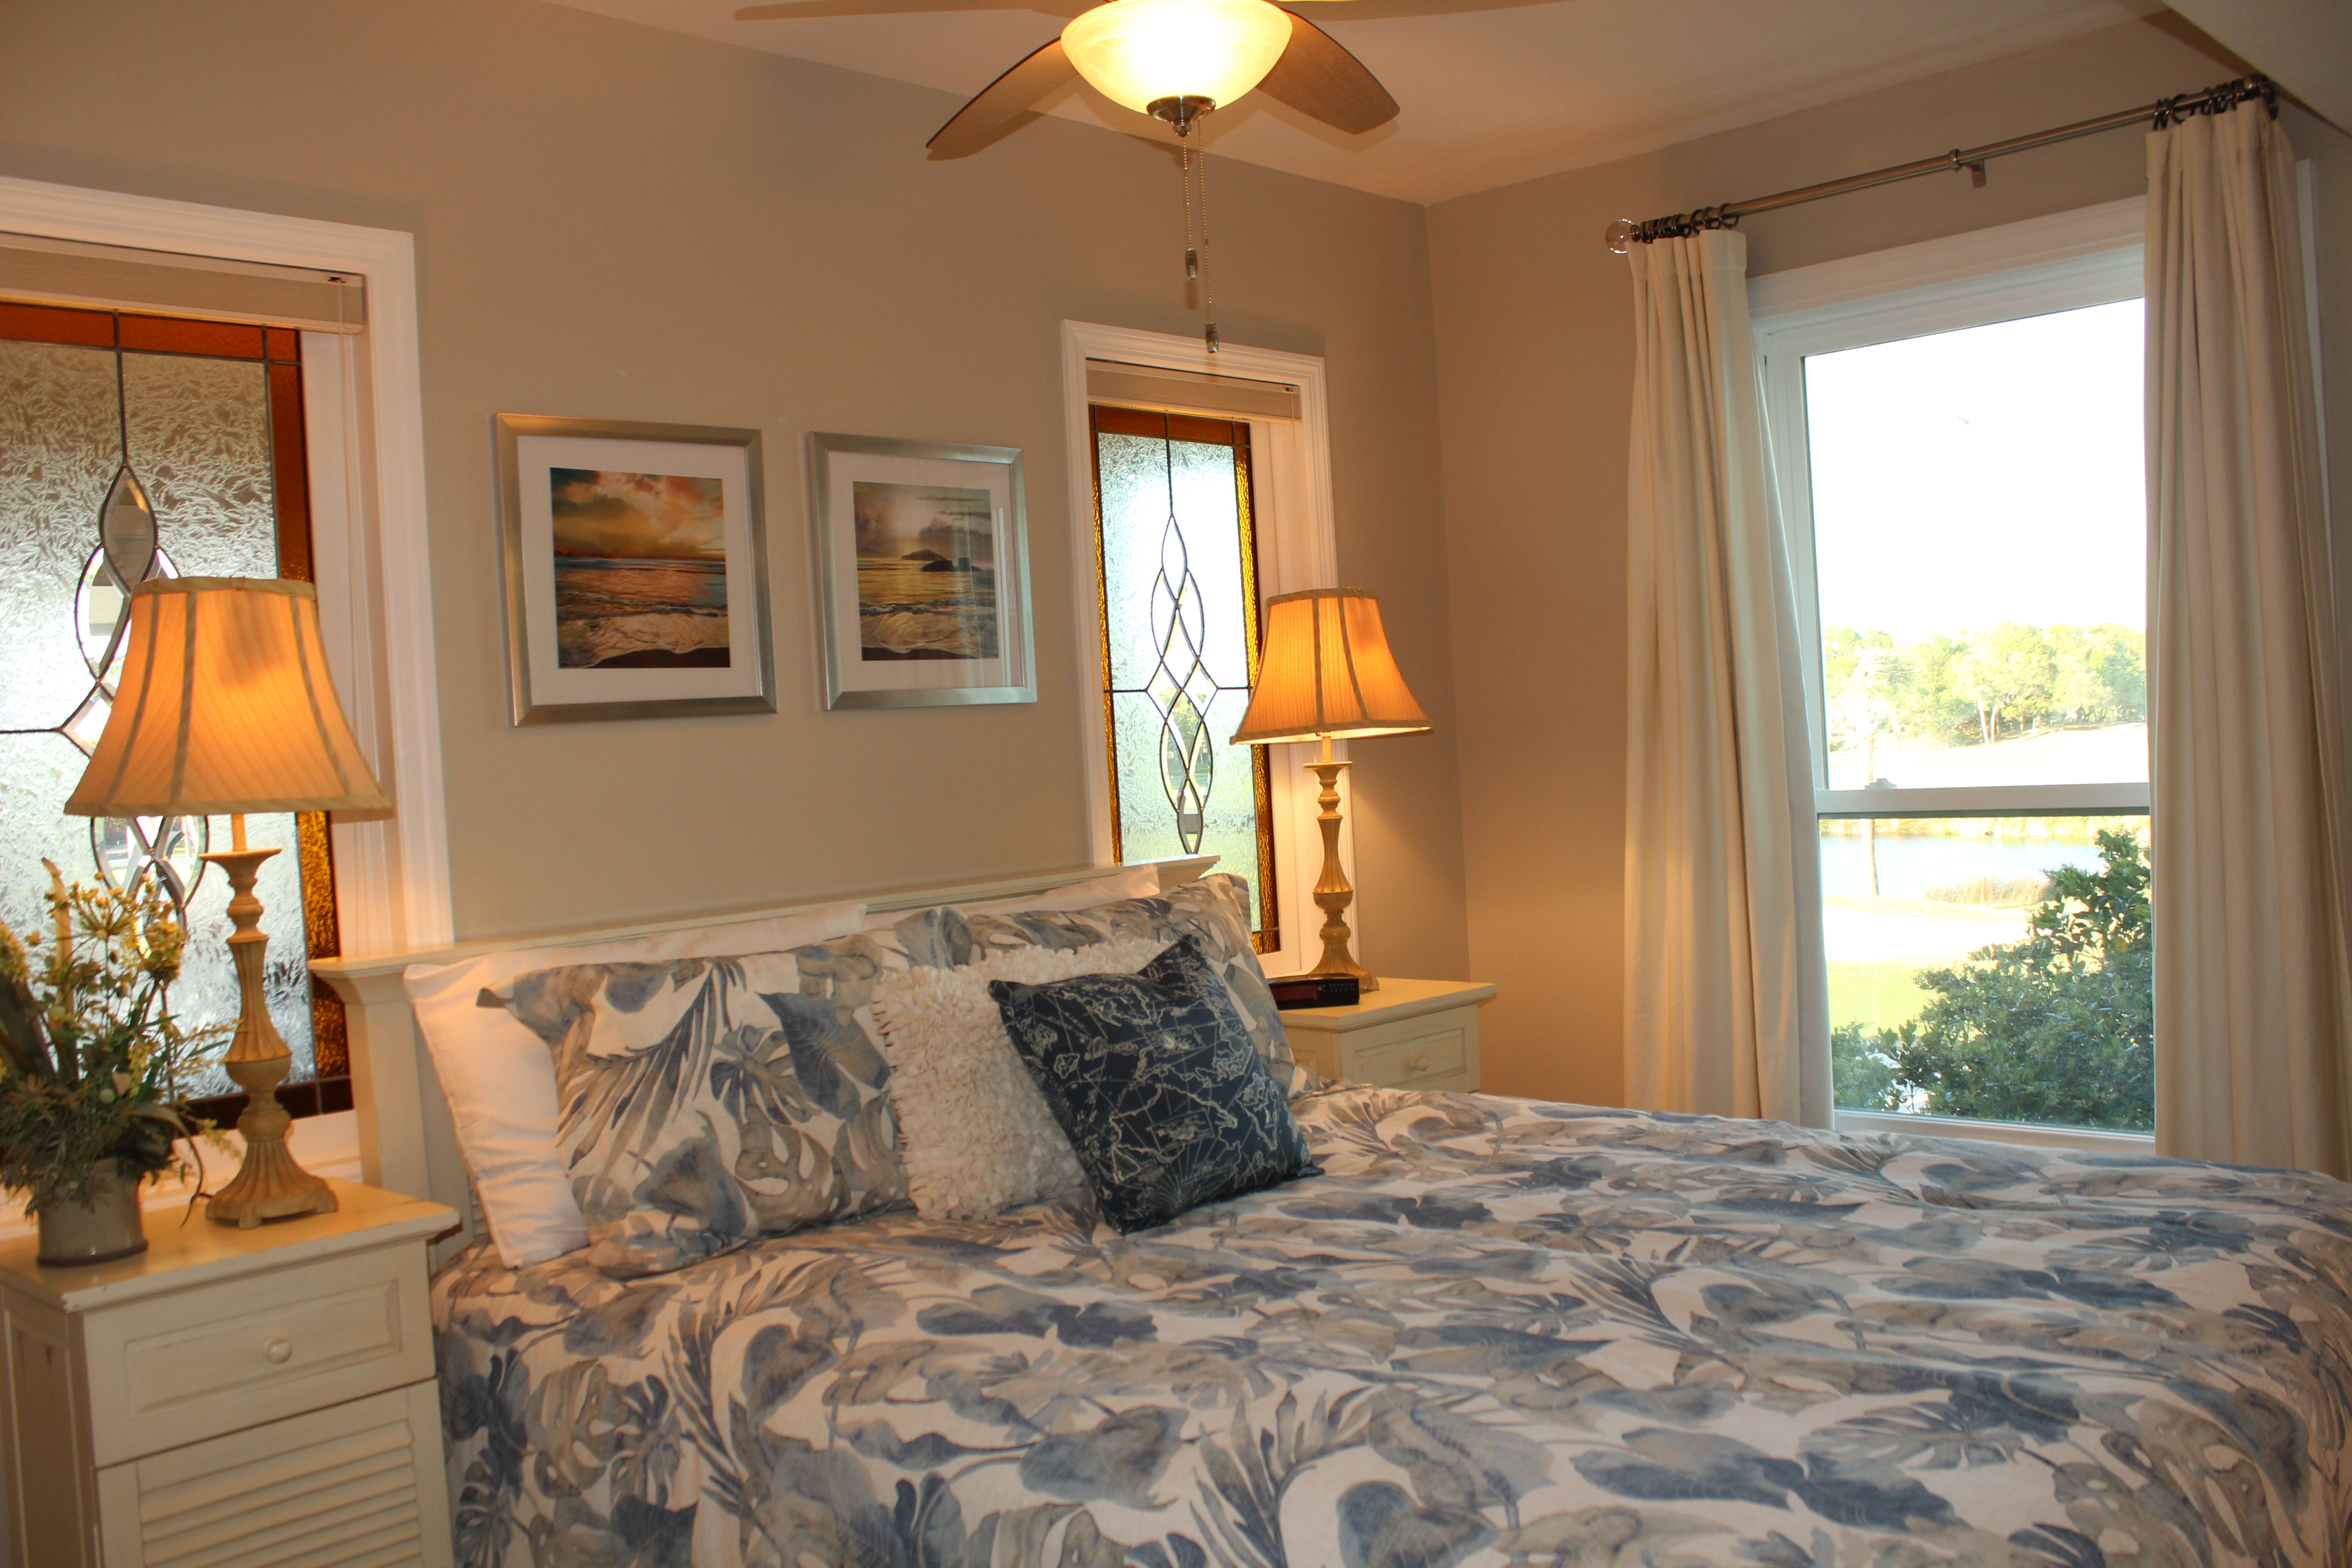 Second bedroom with queen bed, night tables (chest of drawers and TV not shown in right corner of room),Beautiful panoramic view through window.